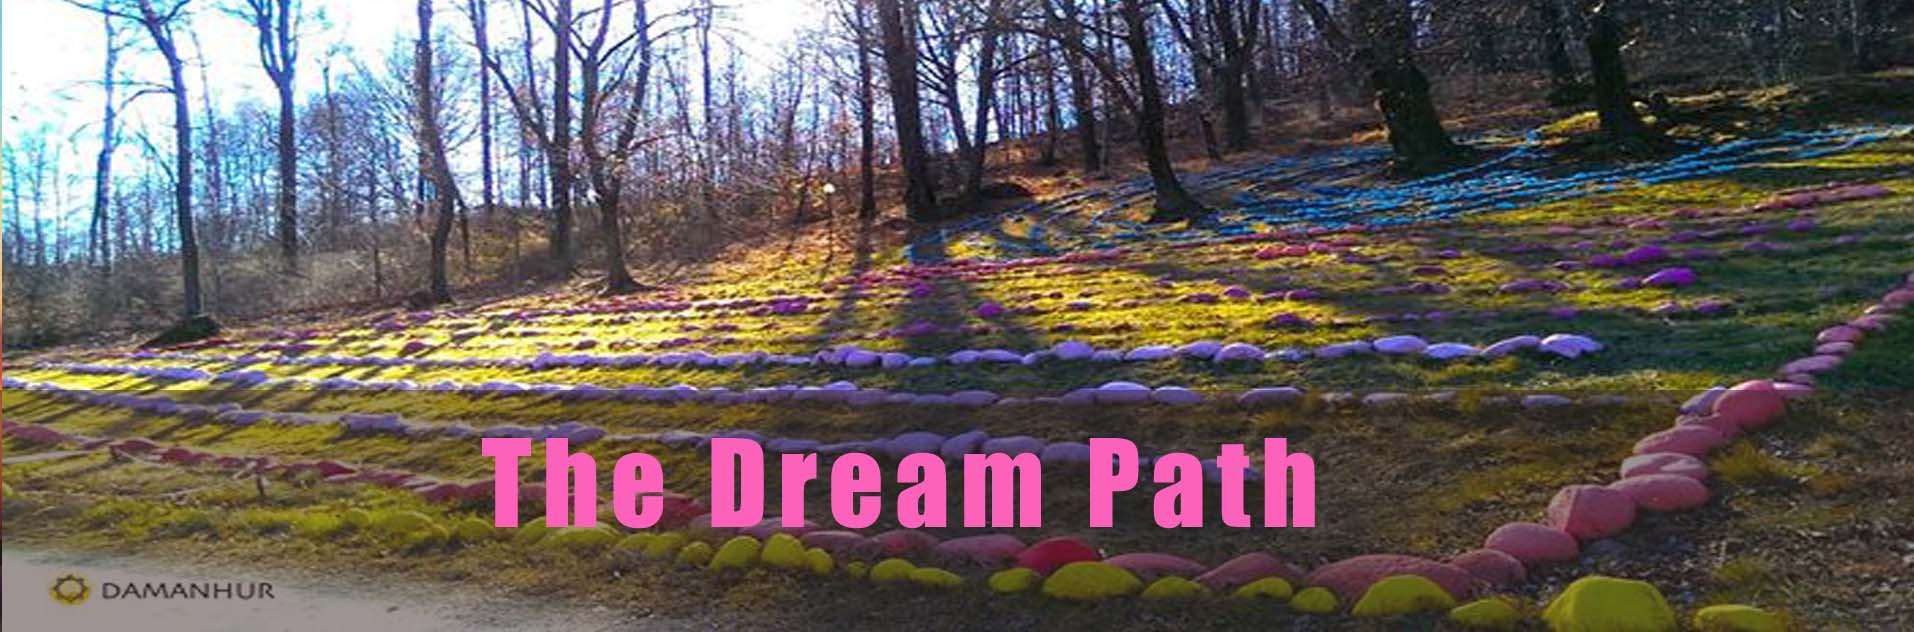 Damanhur The Dream Path Course